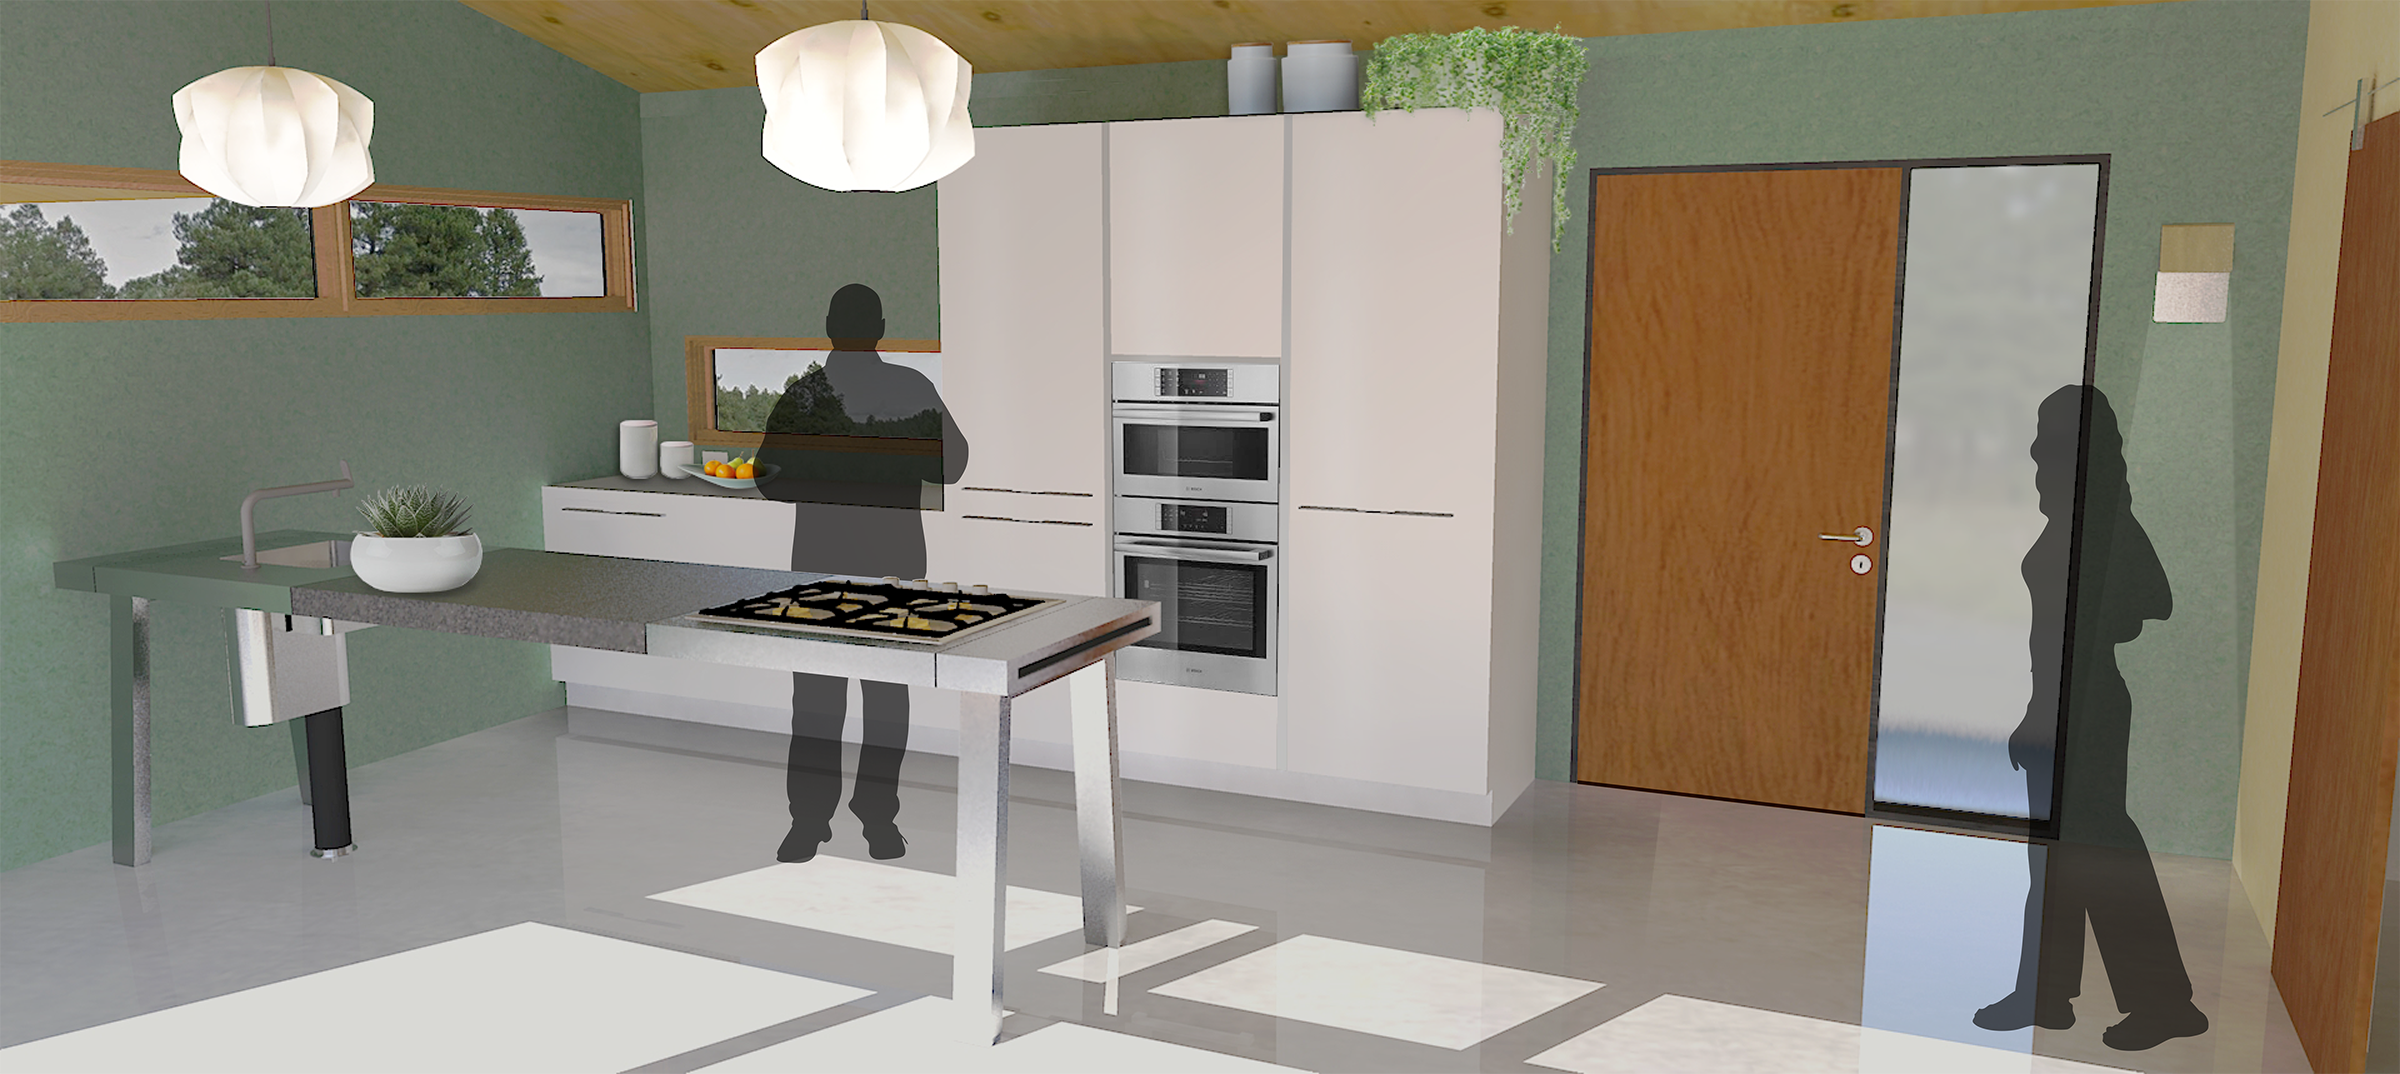 1603_Kitchen Render - with people_Cropped_for web.png